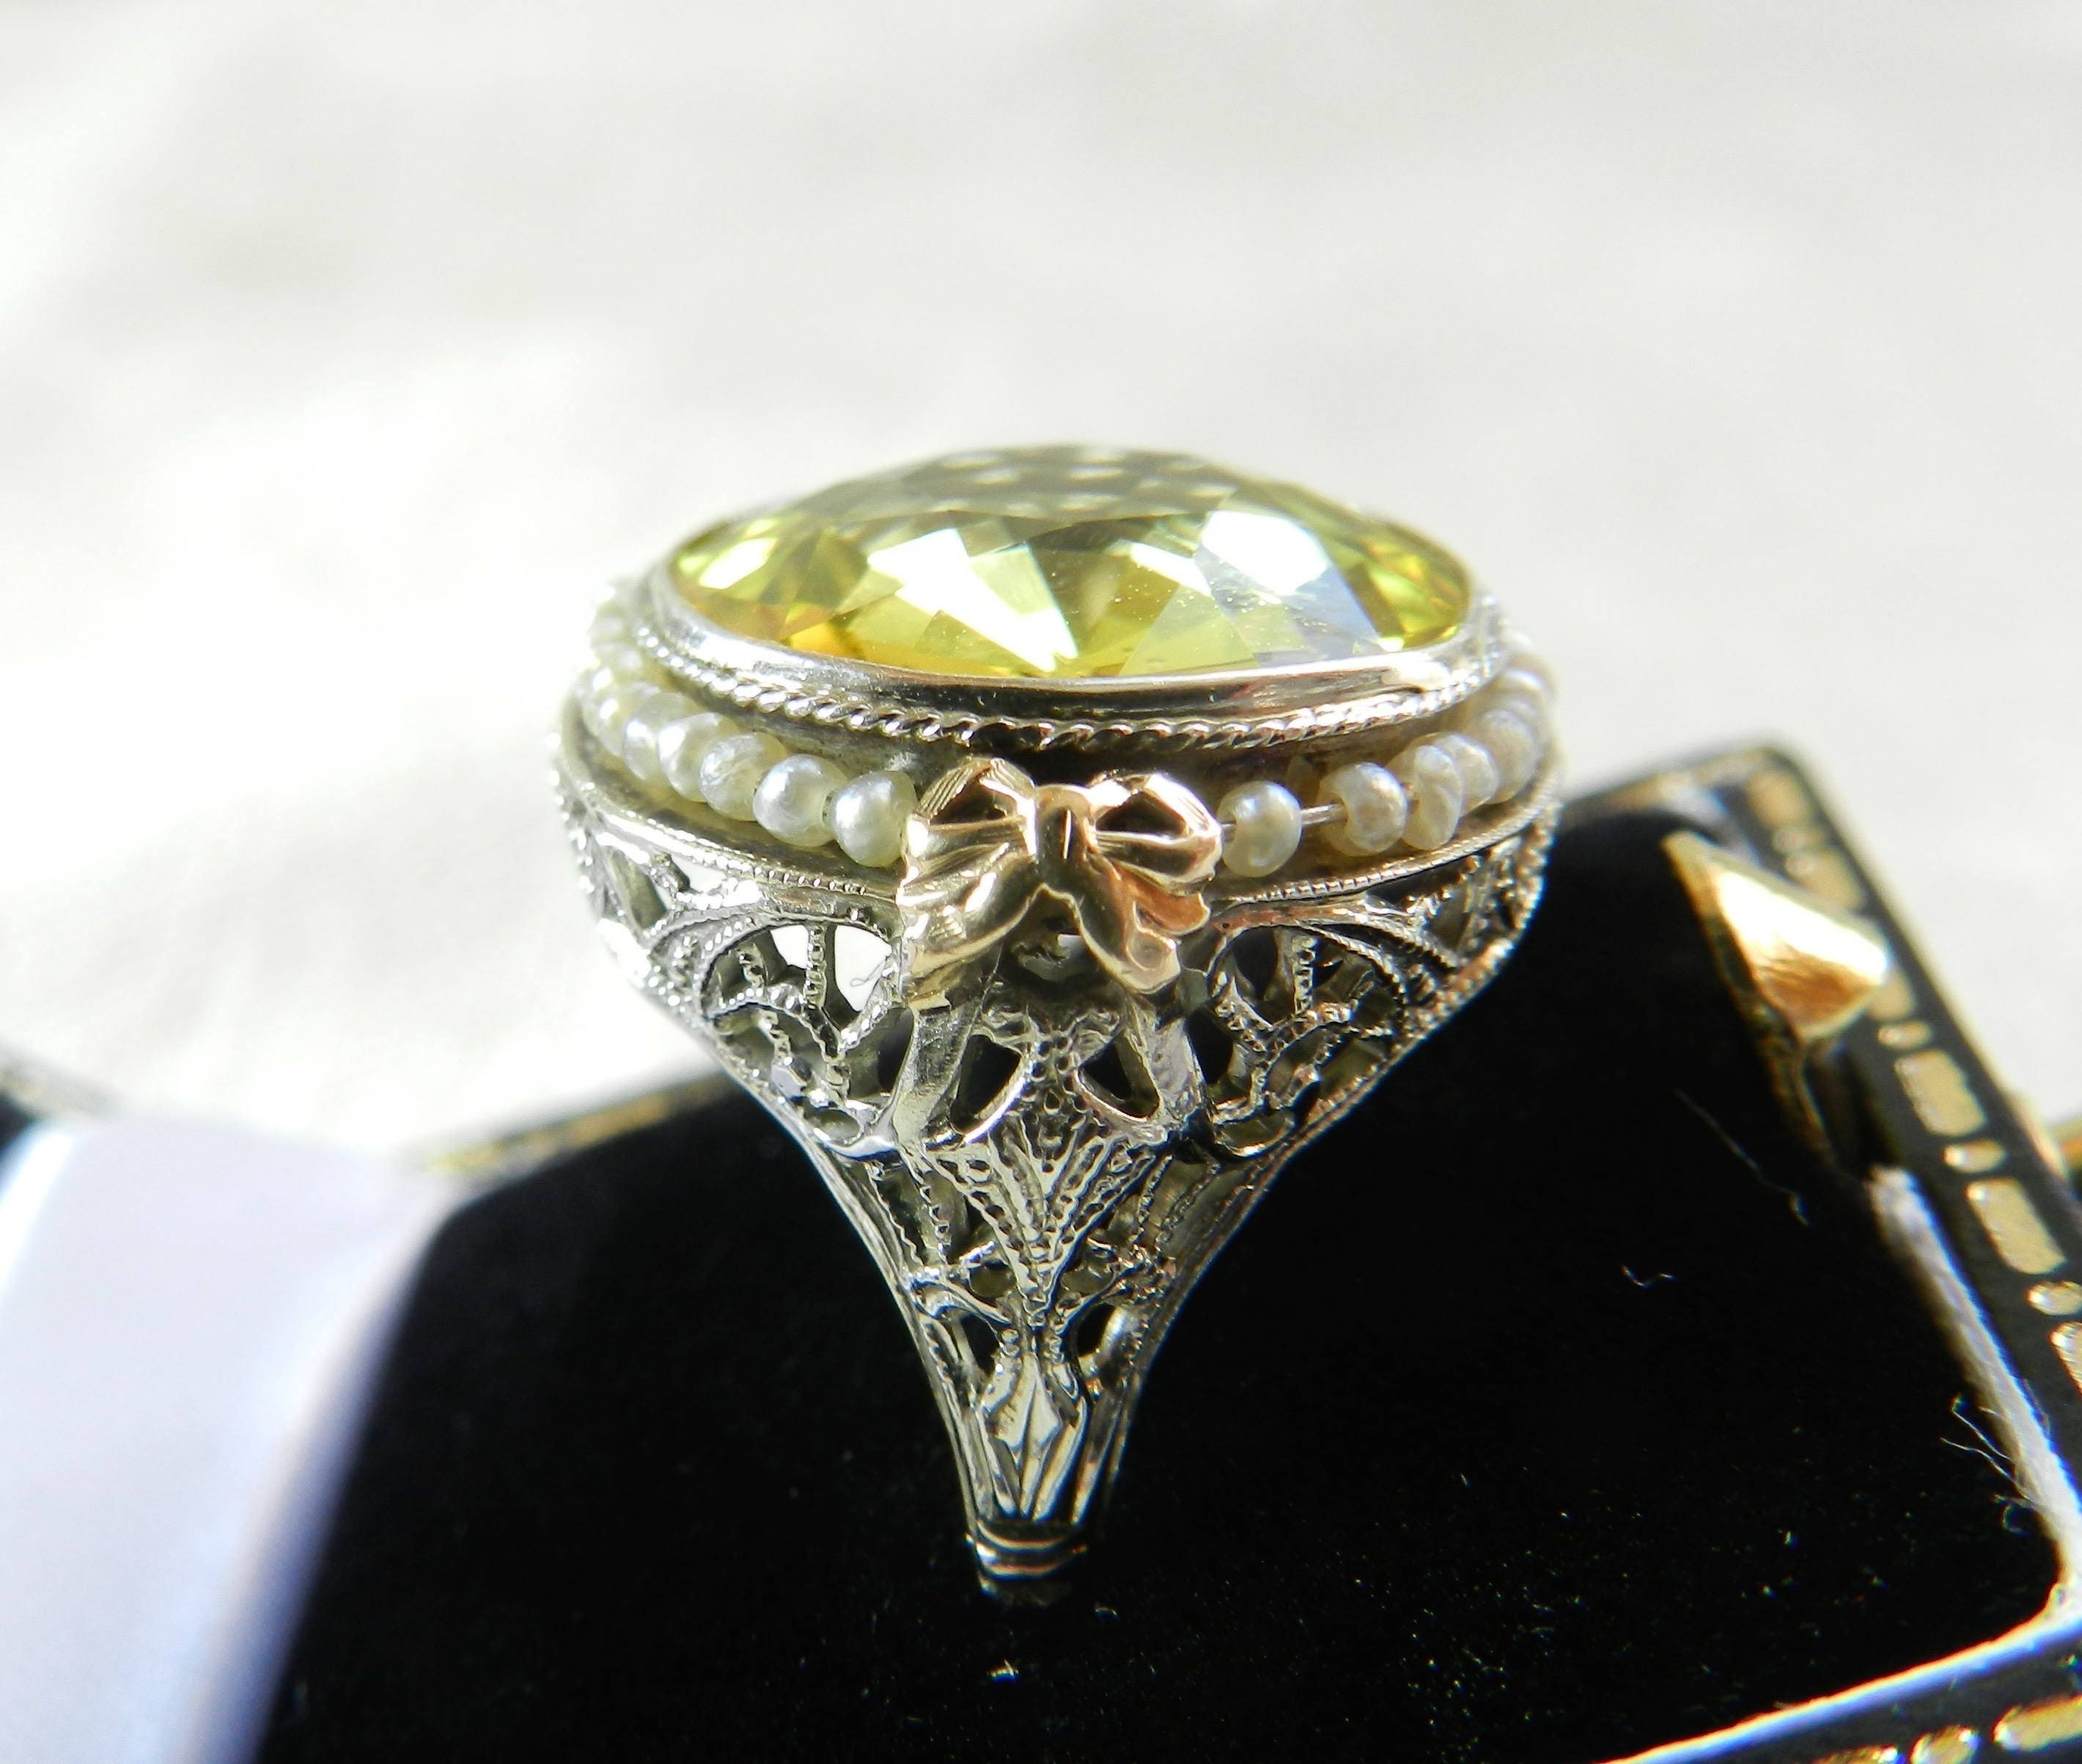 engagement sapphire yellow solid jewelry f white with diamonds authentic heavy gentlemen rings end high handmade o perfect in vvs fine so orange